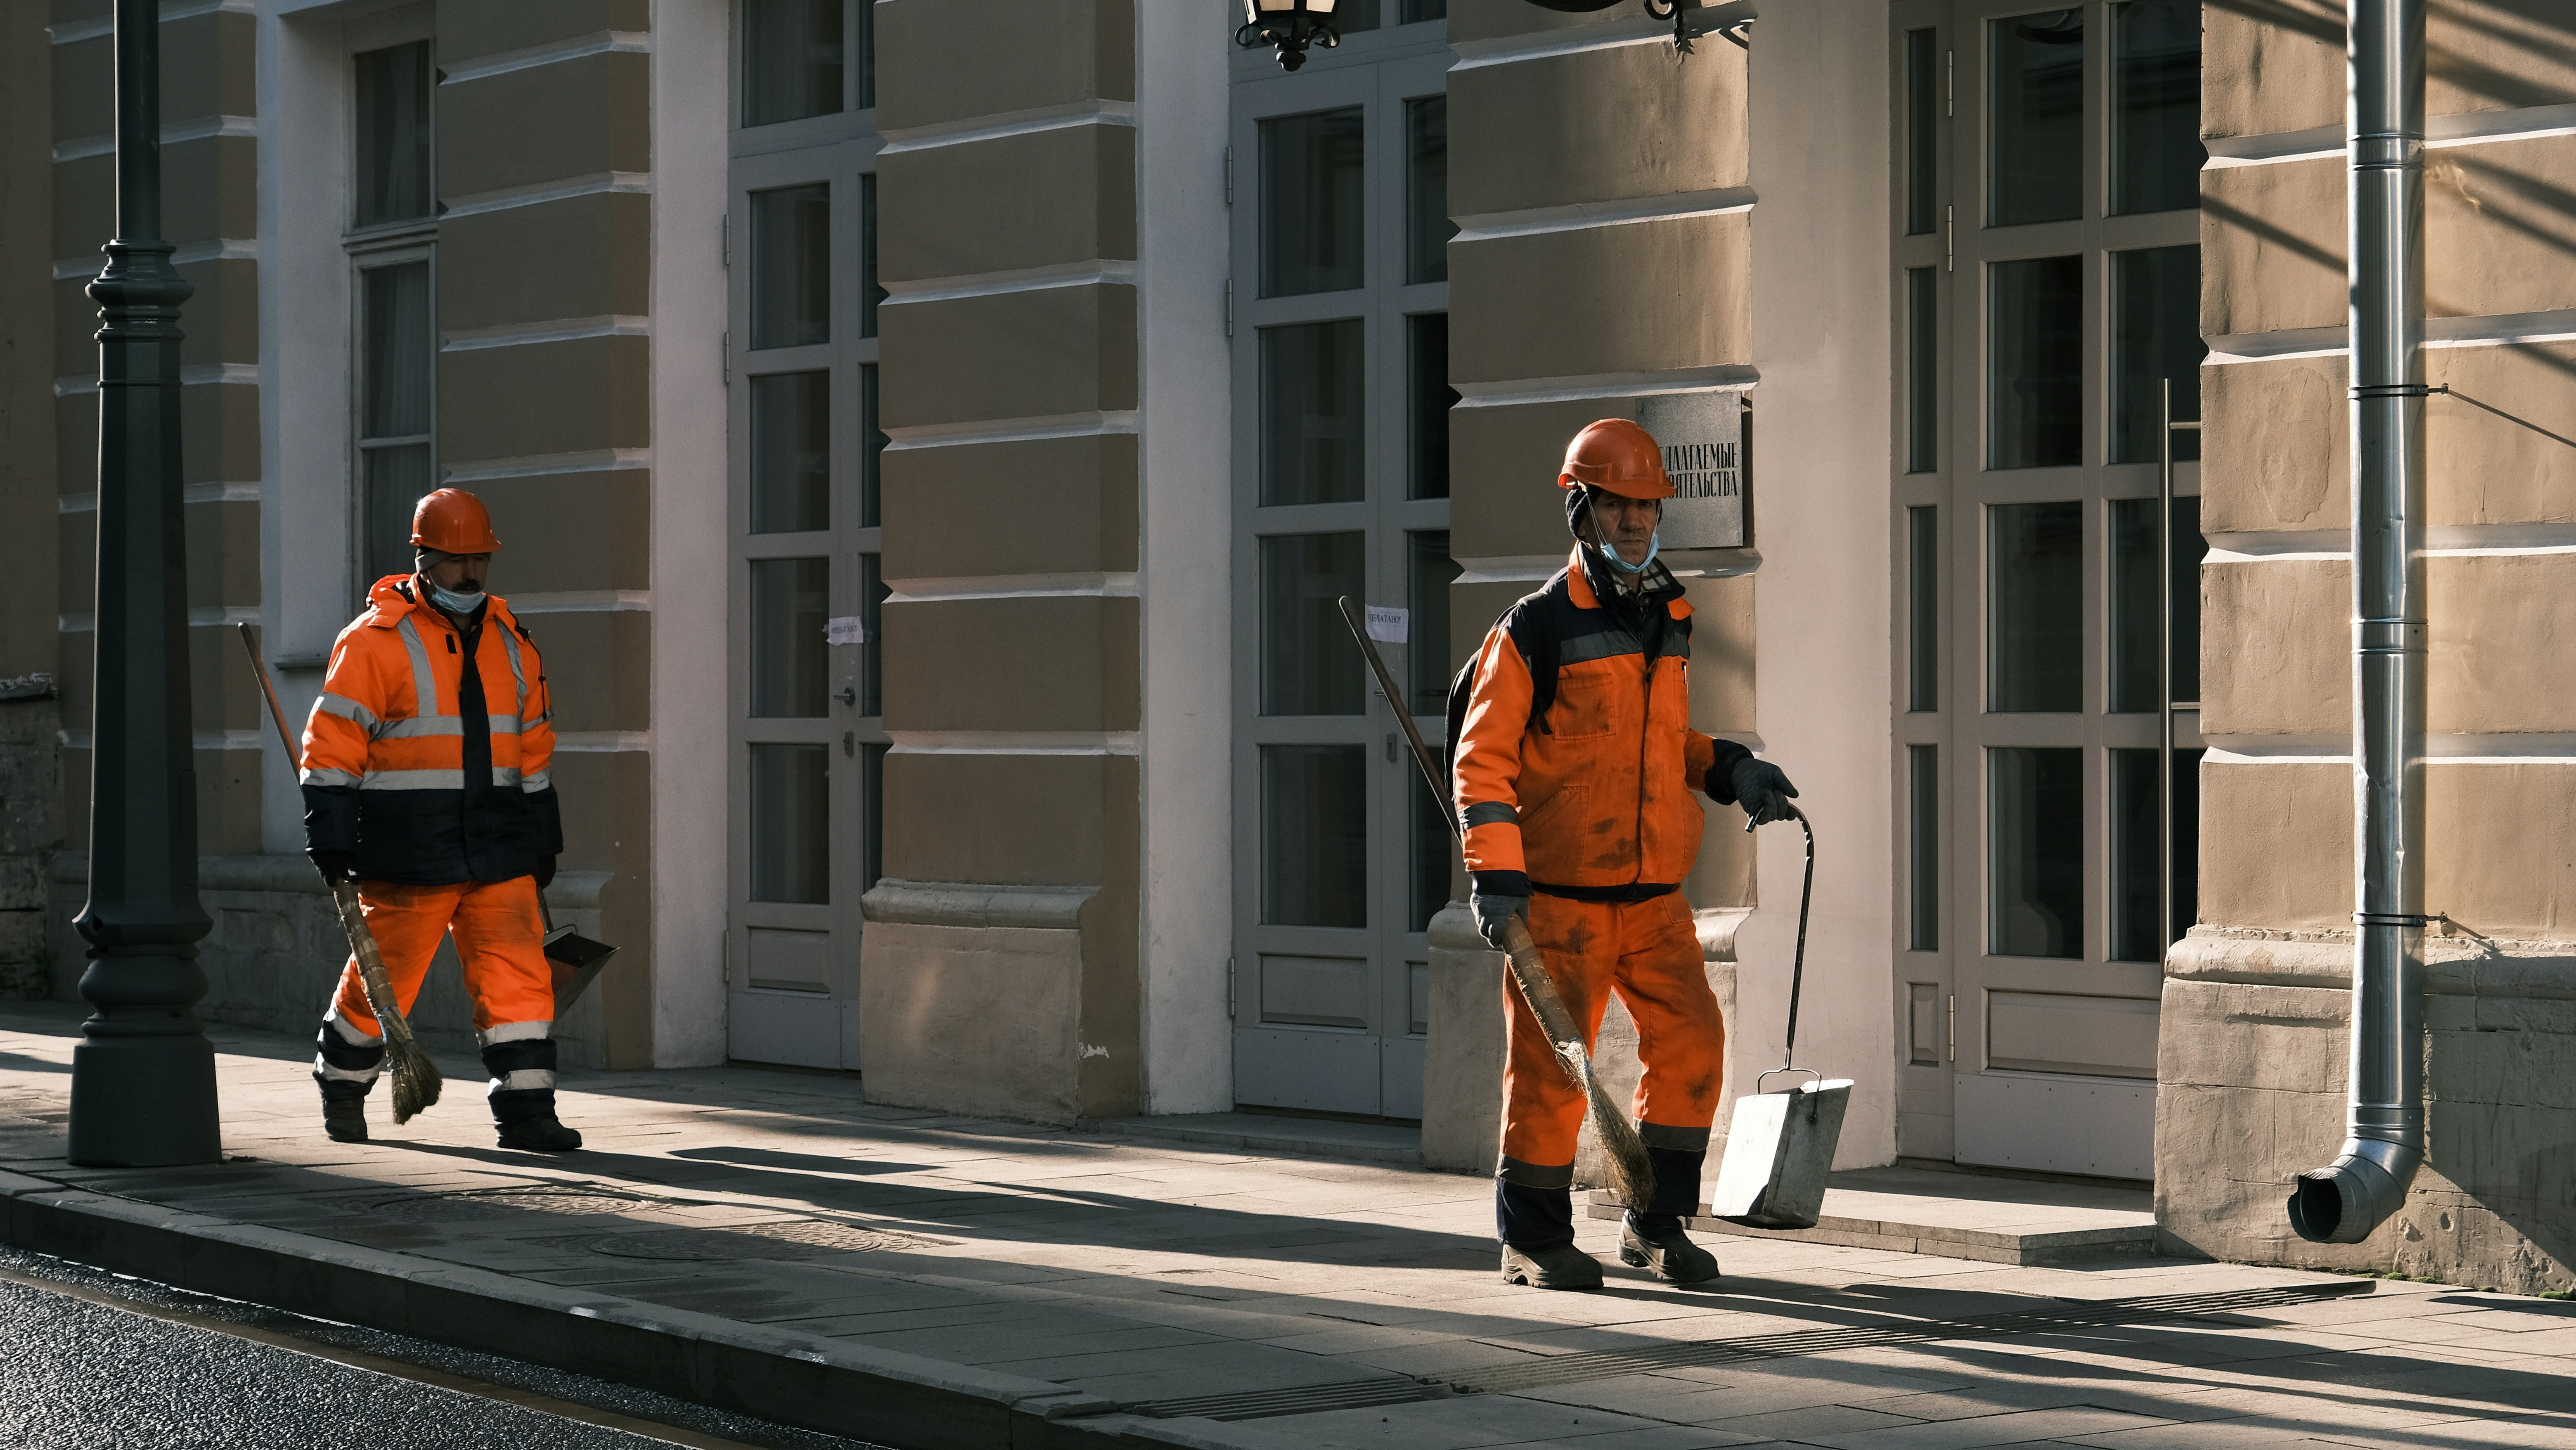 Two janitors are seen walking along the road in the midst of fulfilling their duties   Photo: Pexels/Алексей Васильев